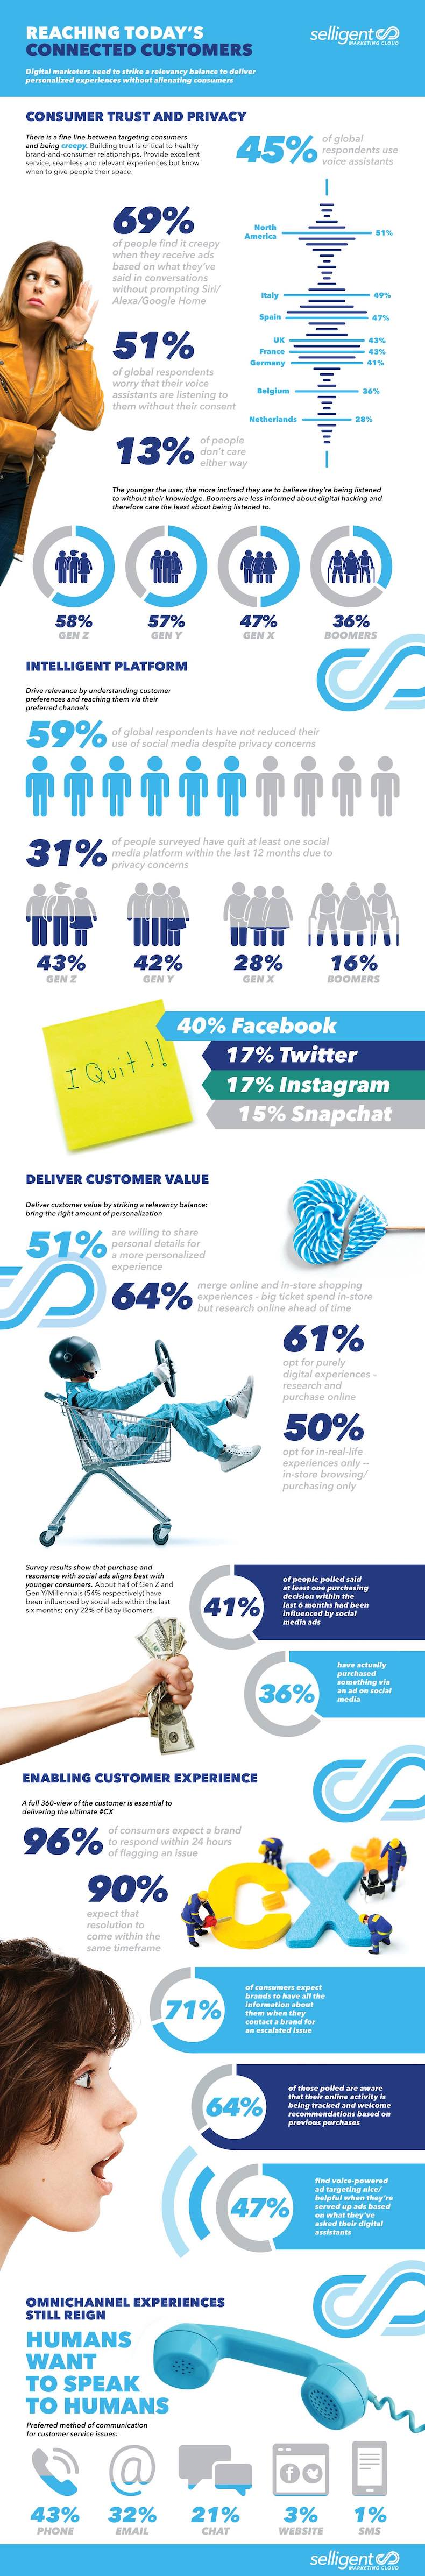 Marketing Strategy - Trust and Privacy: Reaching Today's Connected Customers [Infographic] : MarketingProfs Article 1